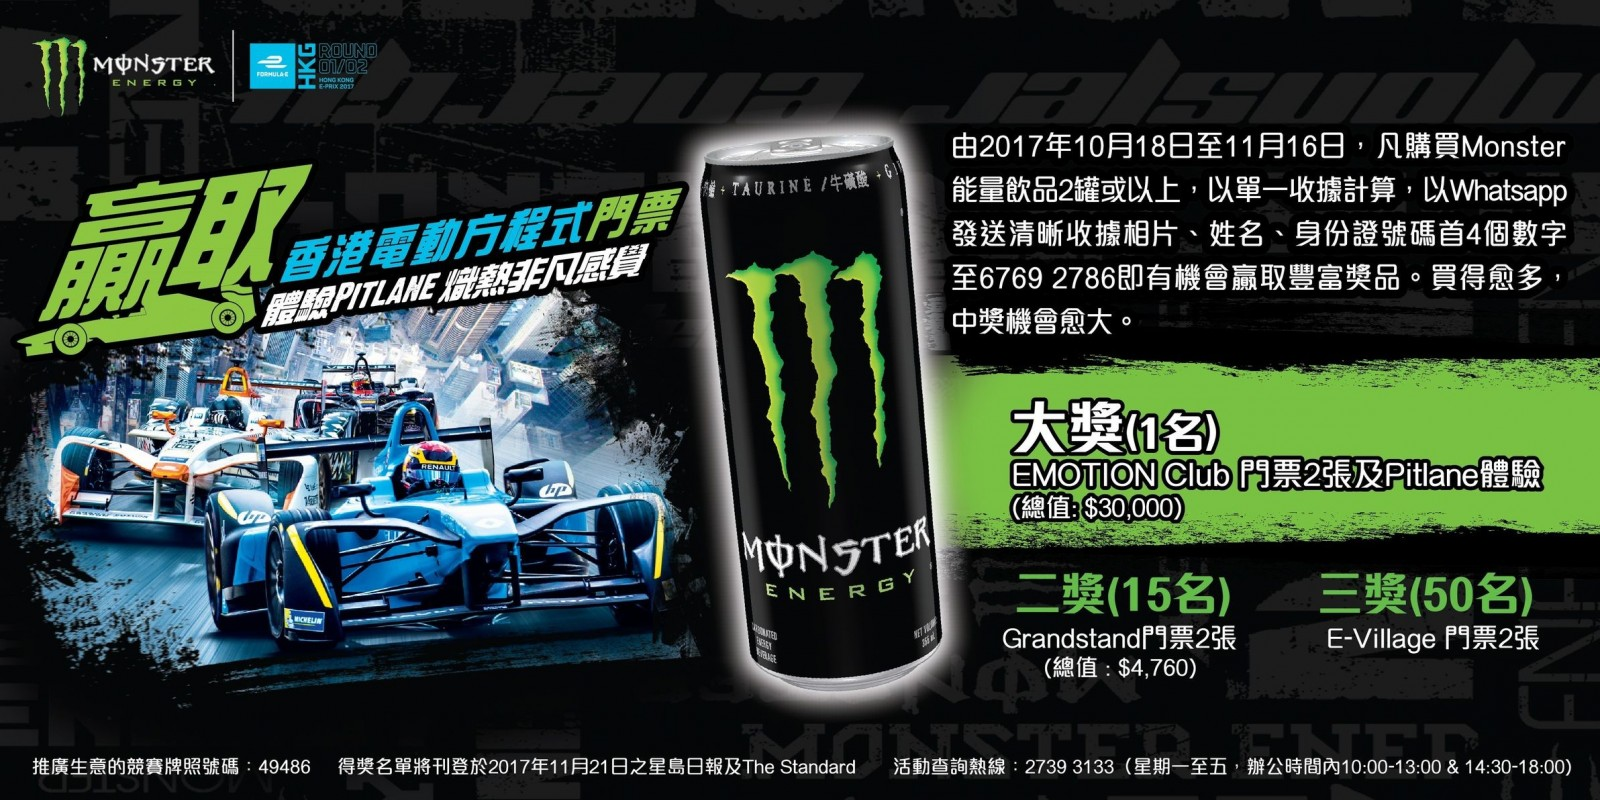 Win Hong Kong E-Prix Ticket - Experience the PITLANE From 18th October to 16th November 2017, buy 2 cans of Monster energy drinks at designated channels in Hong Kong, keep the original receipt and send receipts' photo, name and first 4 digits of HKID card